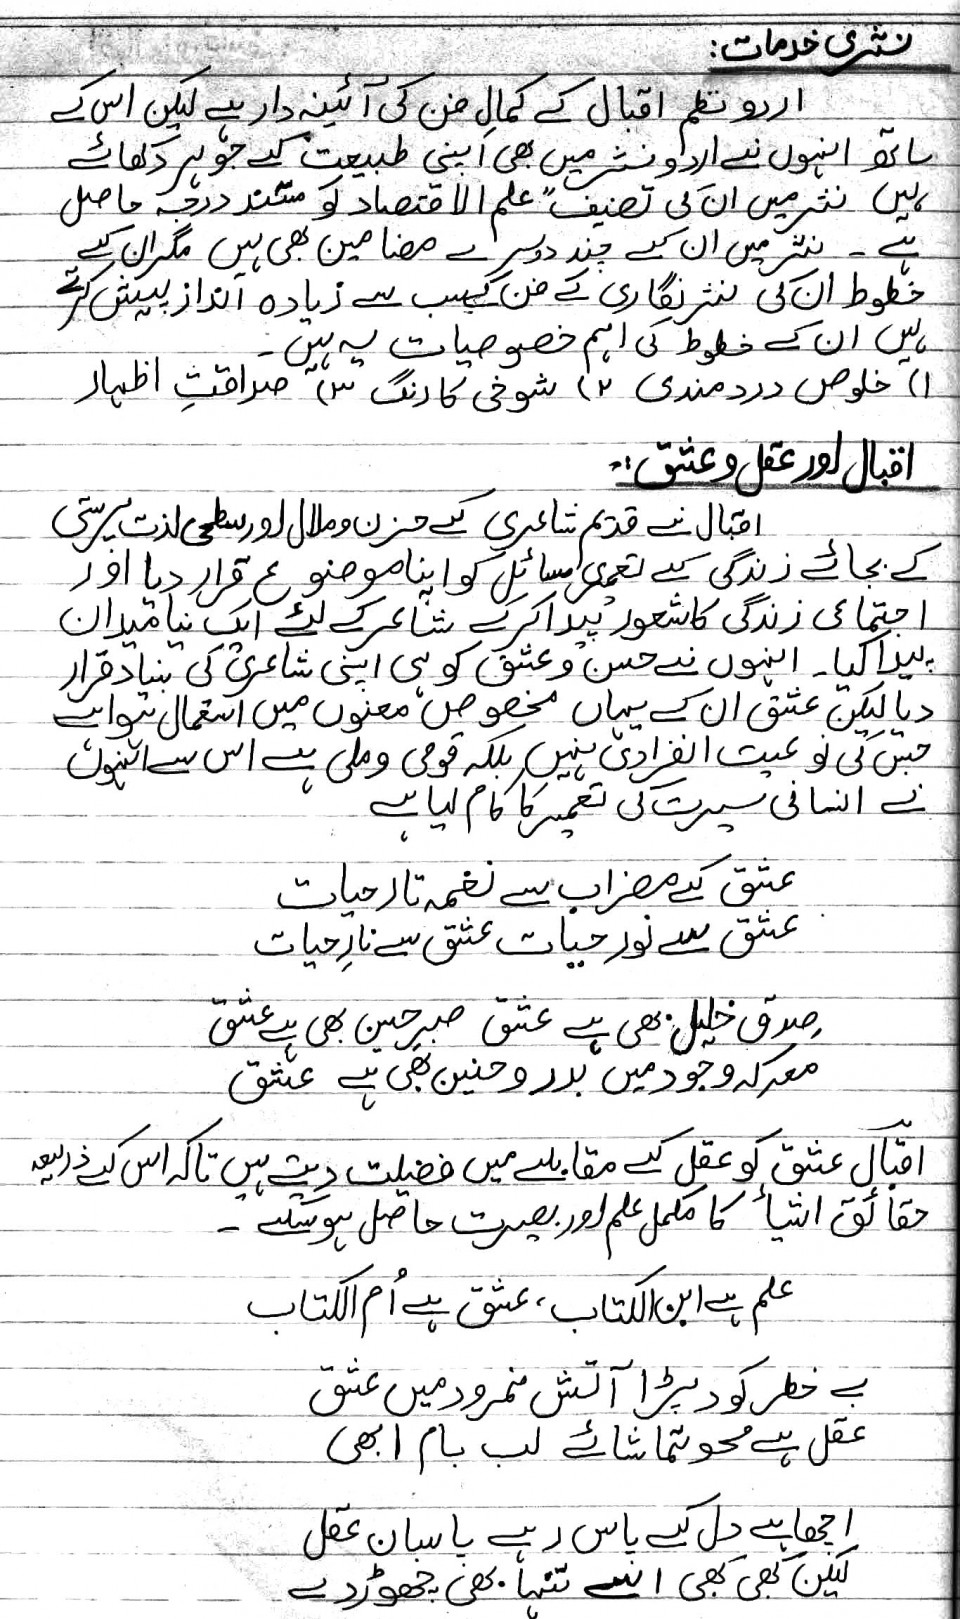 005 Urdu Essay Allama Iqbal Jpg Dreaded On In For Class 10 With Poetry Ka Shaheen Headings And 960